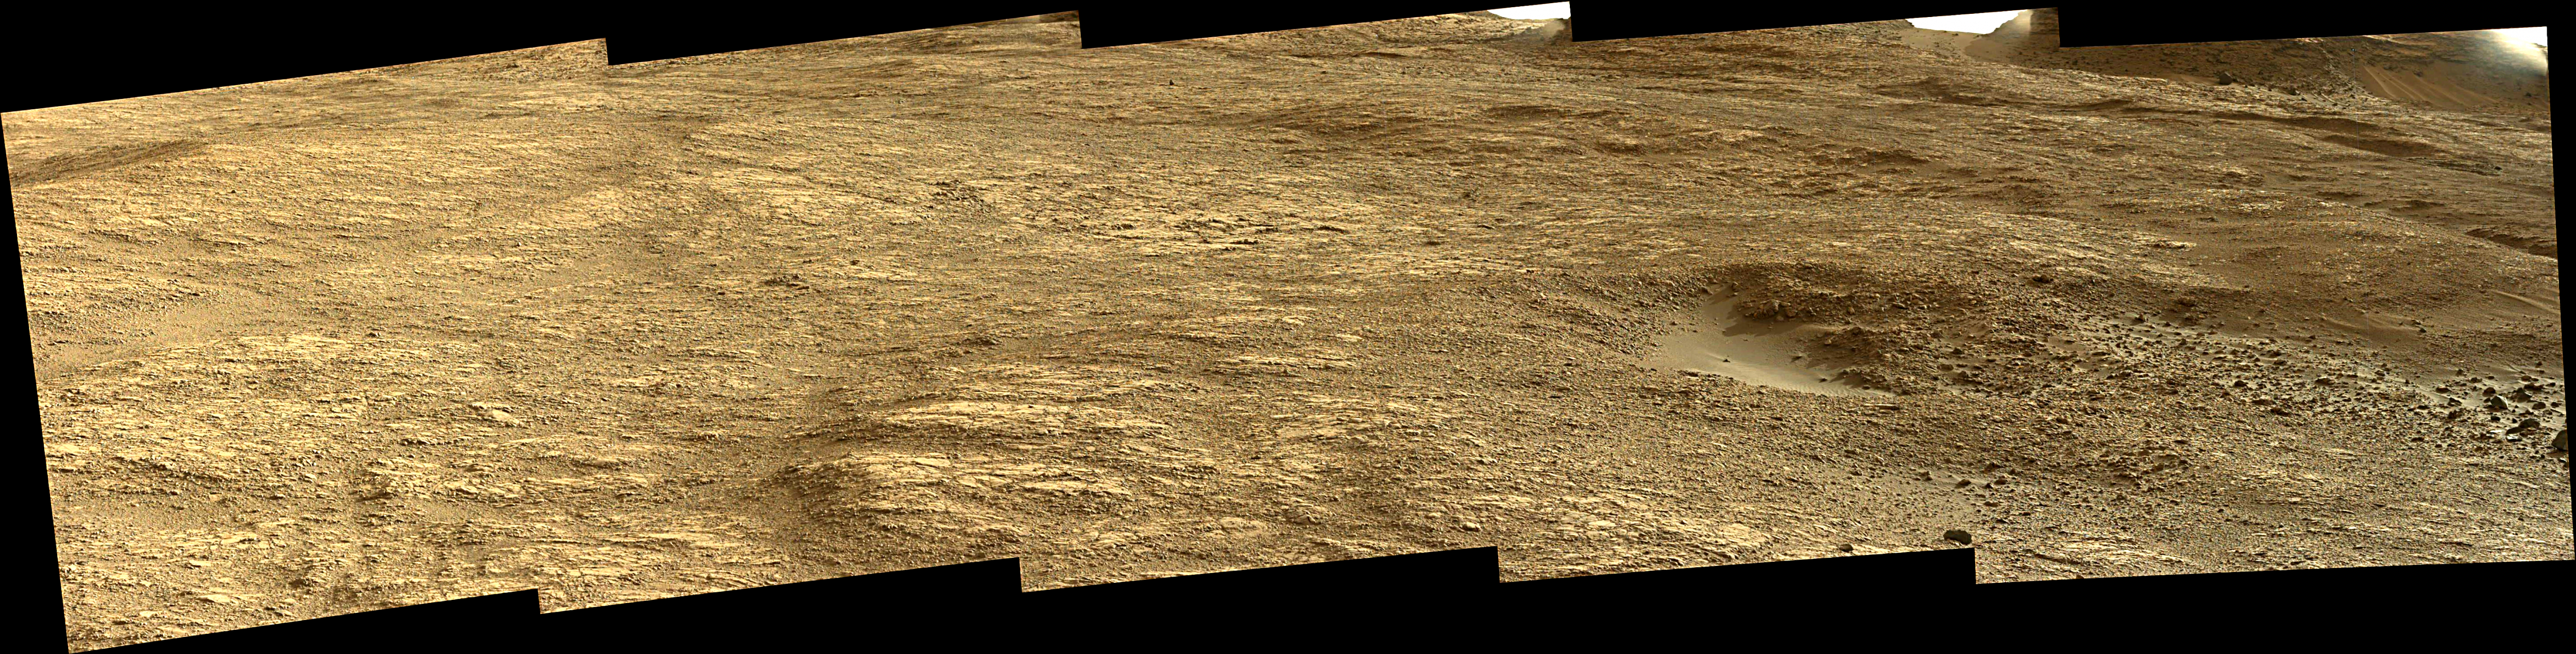 Curiosity Rover Composite View 1e of Mars Sol 1405 – Click to enlarge